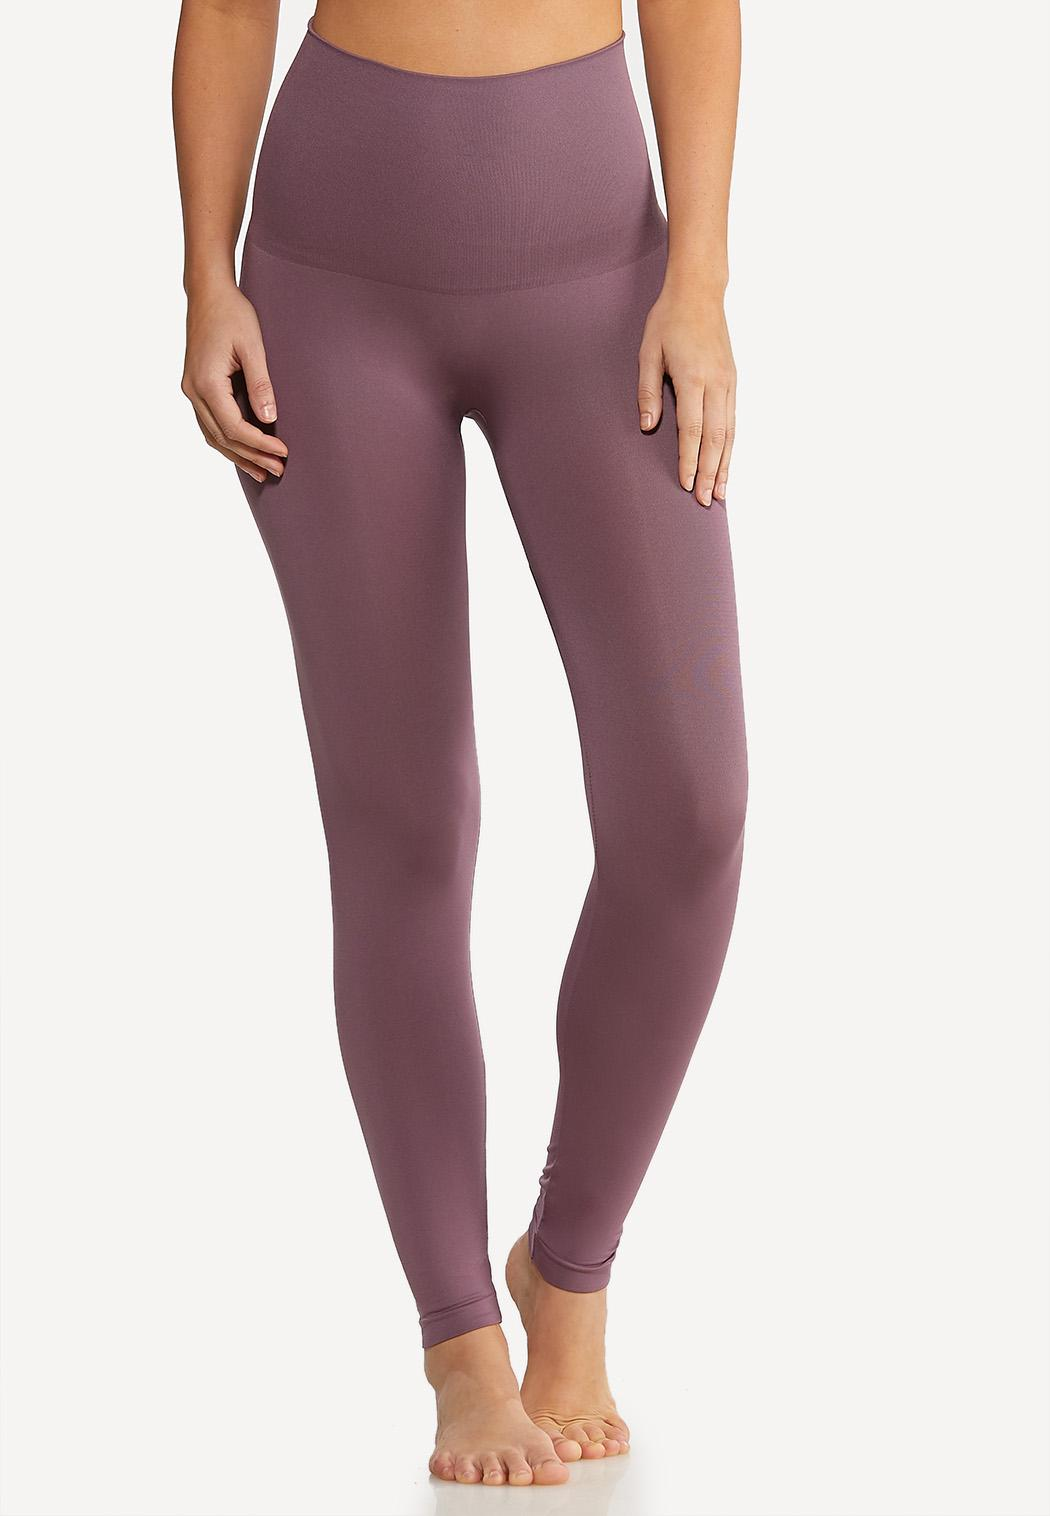 Perfect with Jeans Skirt Dress Pants Leggings and Simply